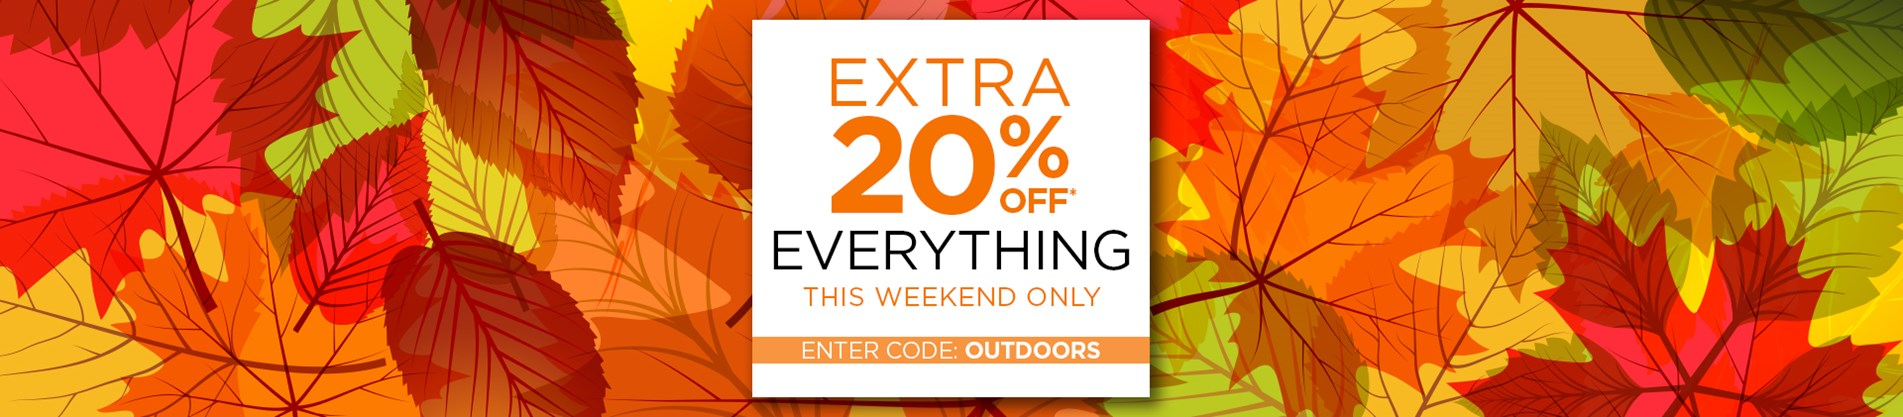 Extra 20% Off Everything* Use Code: OUTDOORS